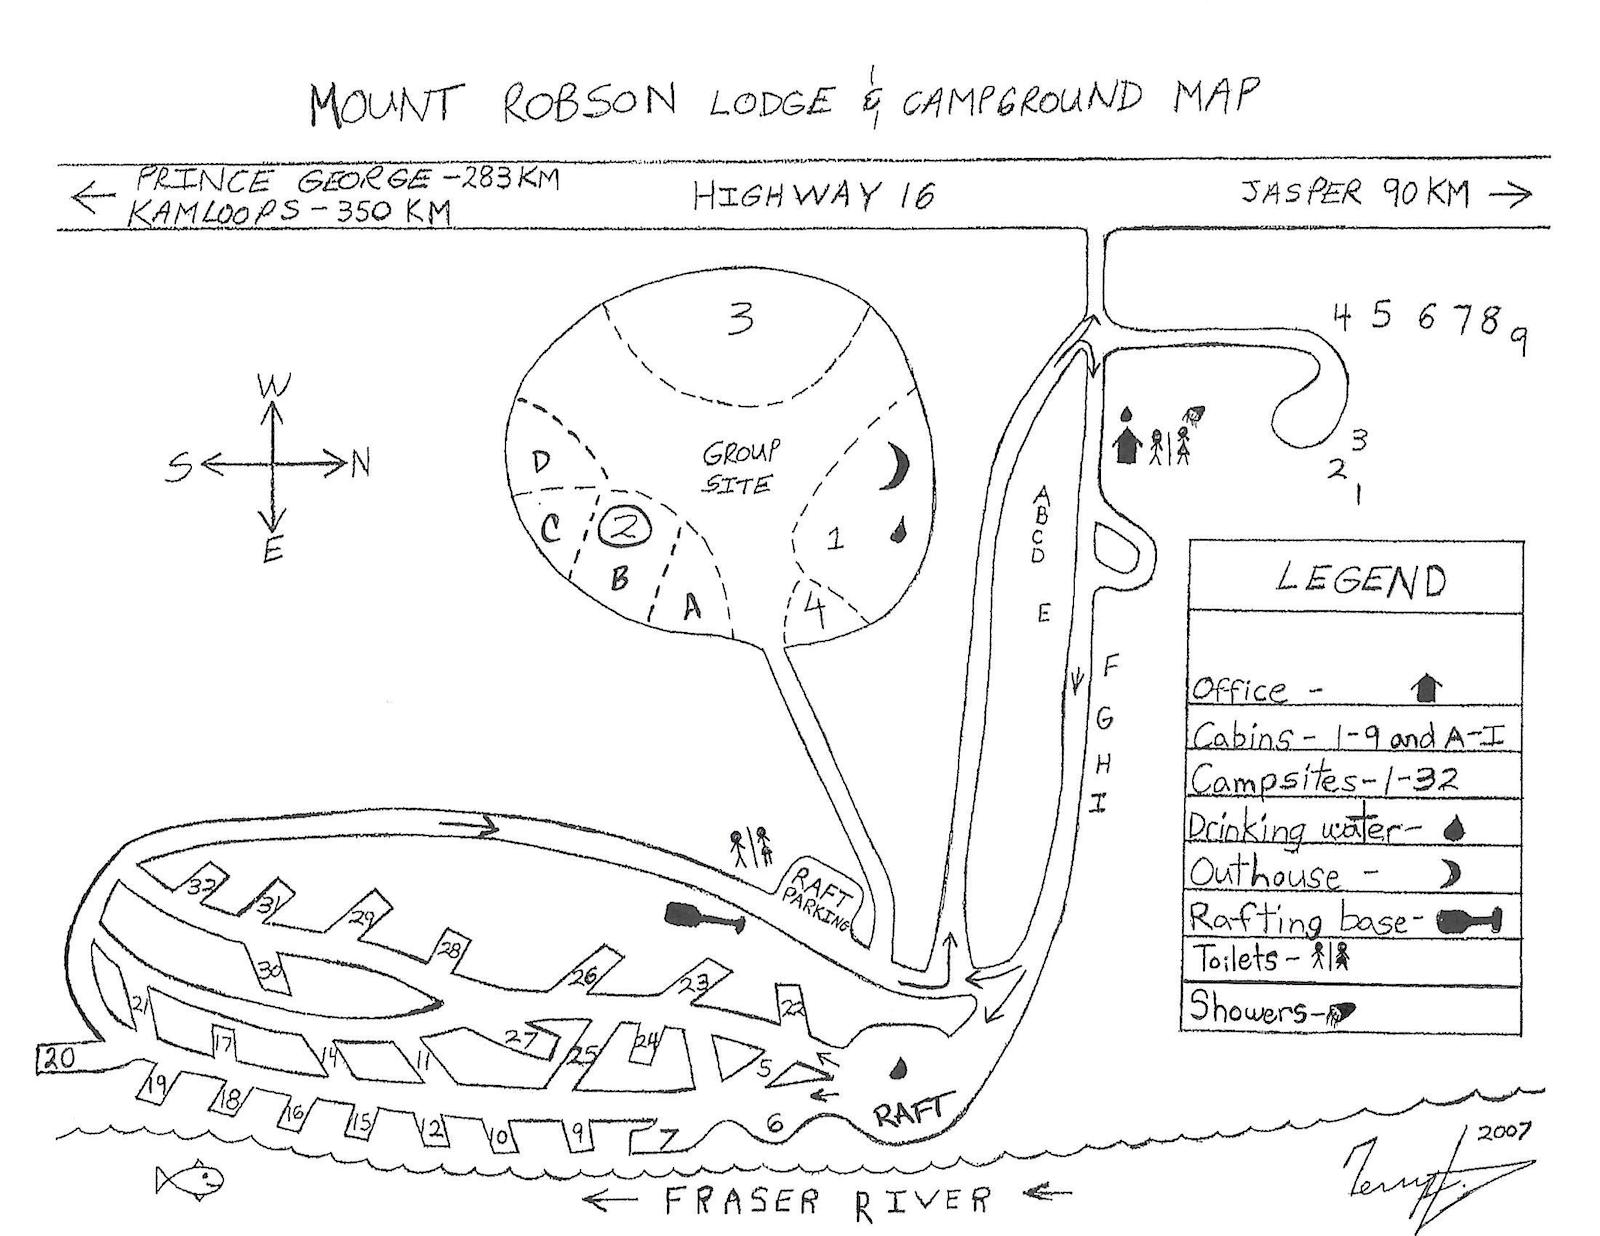 Mount_Robson Lodge Site Map